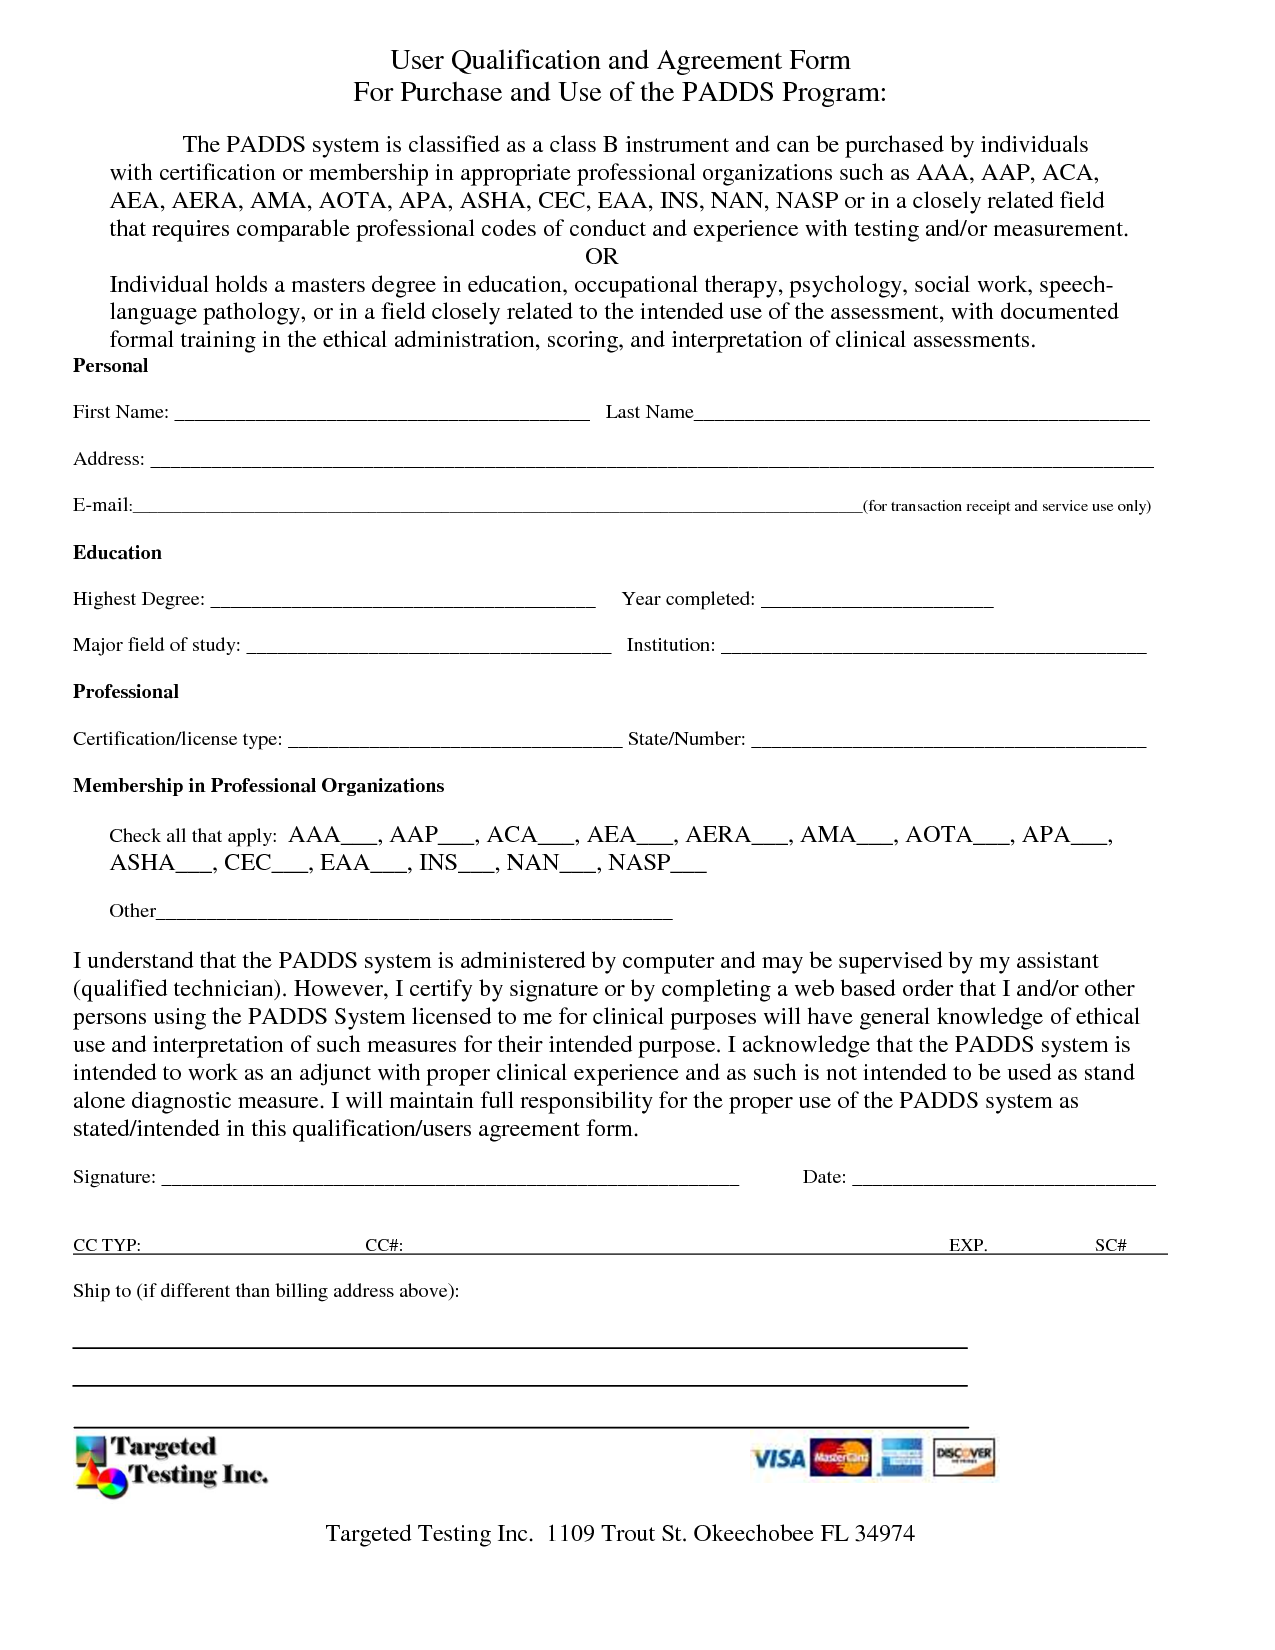 Purchase Agreement Form Free by sarahbauer free purchase – Printable Purchase Agreement